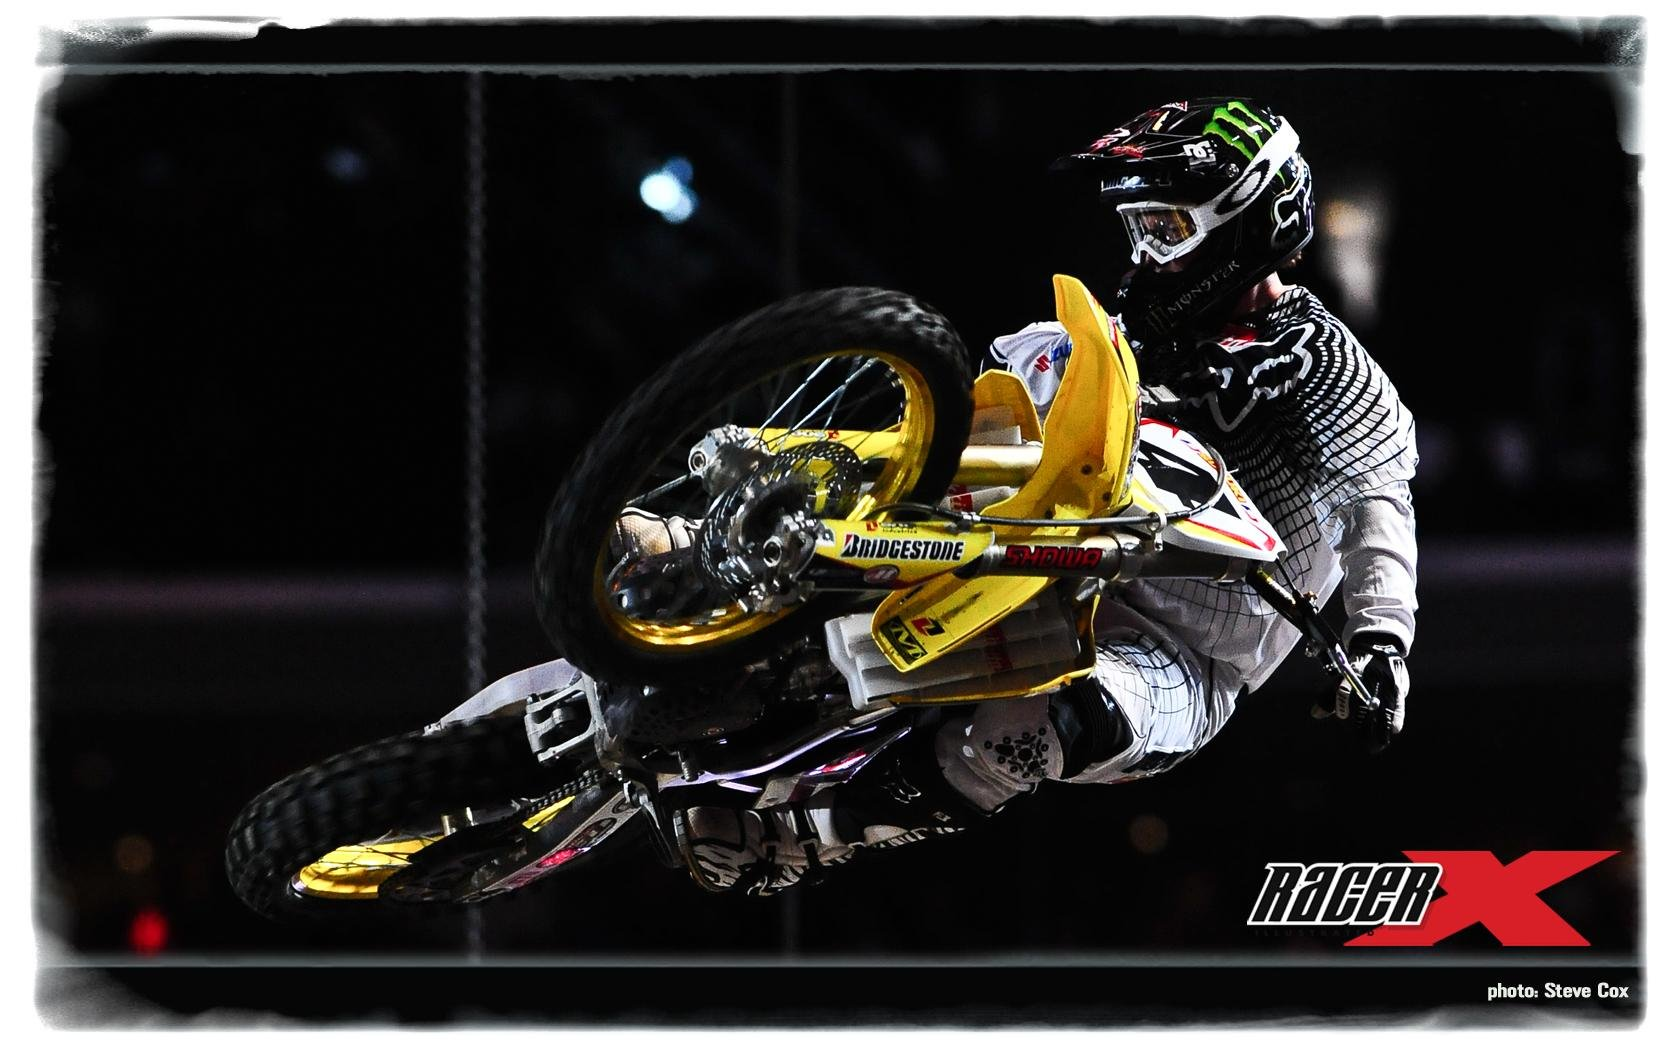 X games wallpapers by steve cox racer x online rc rc renner voltagebd Image collections